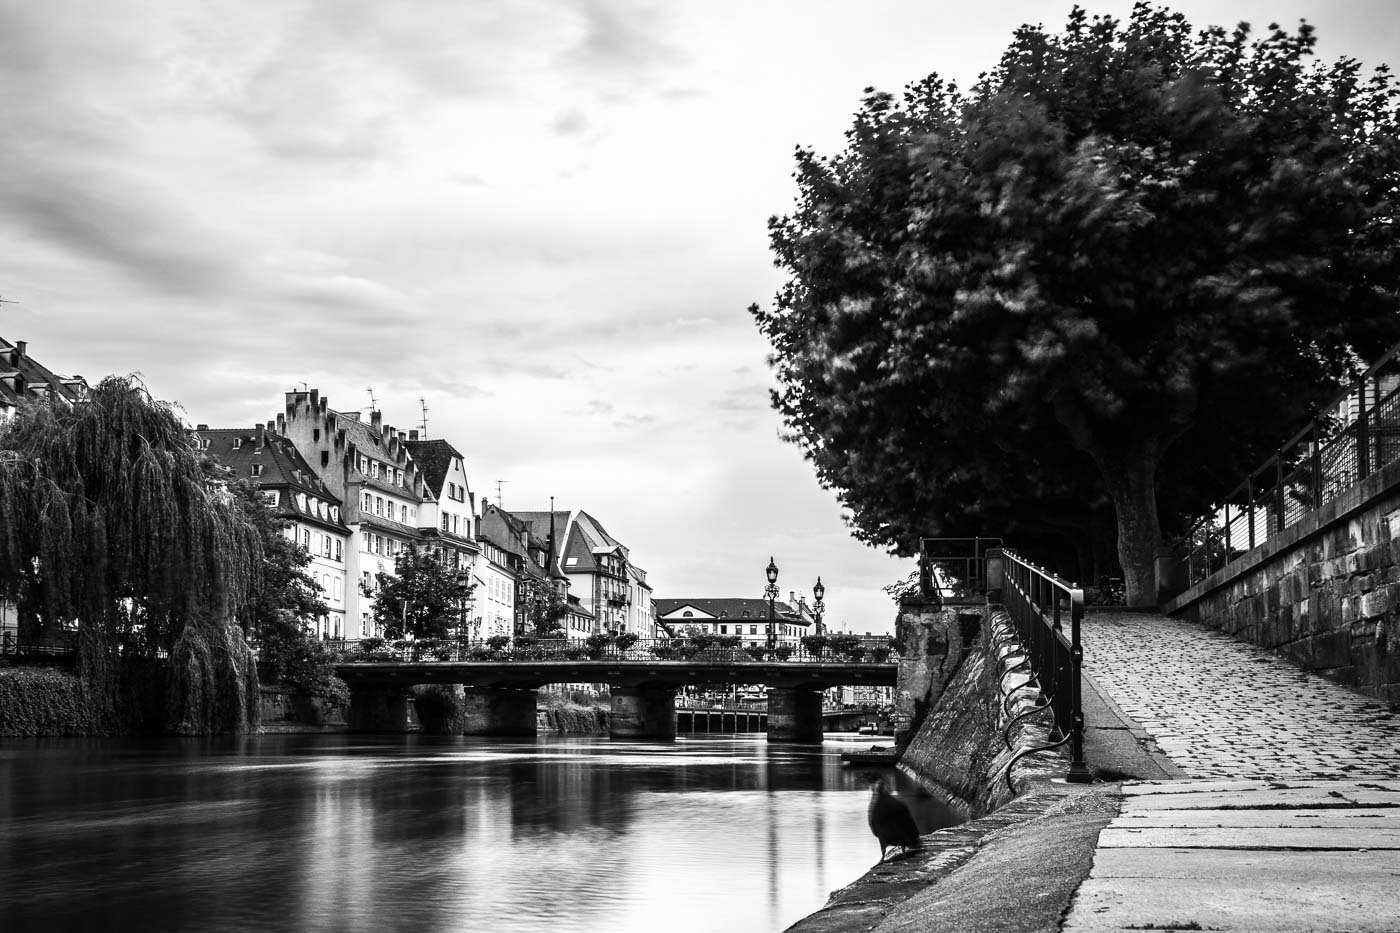 A view along the river Rhine in Strasbourg, France. Camera on a portable mini tripod, photo taken while eating a decidedly mediocre lunch with a work colleague.